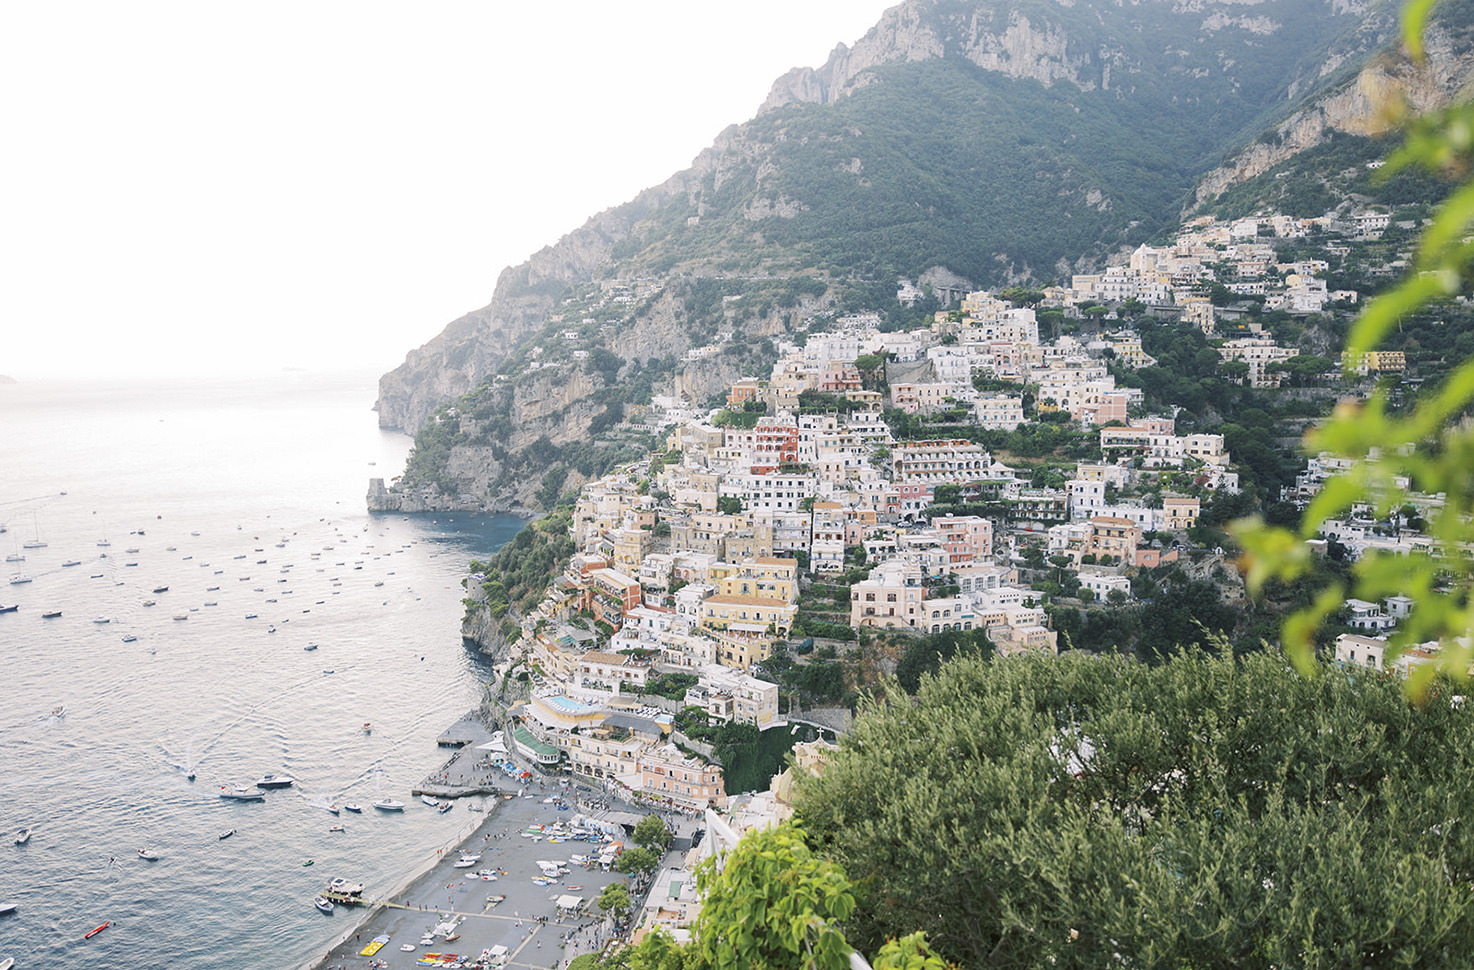 Panorama of Positano with sea view